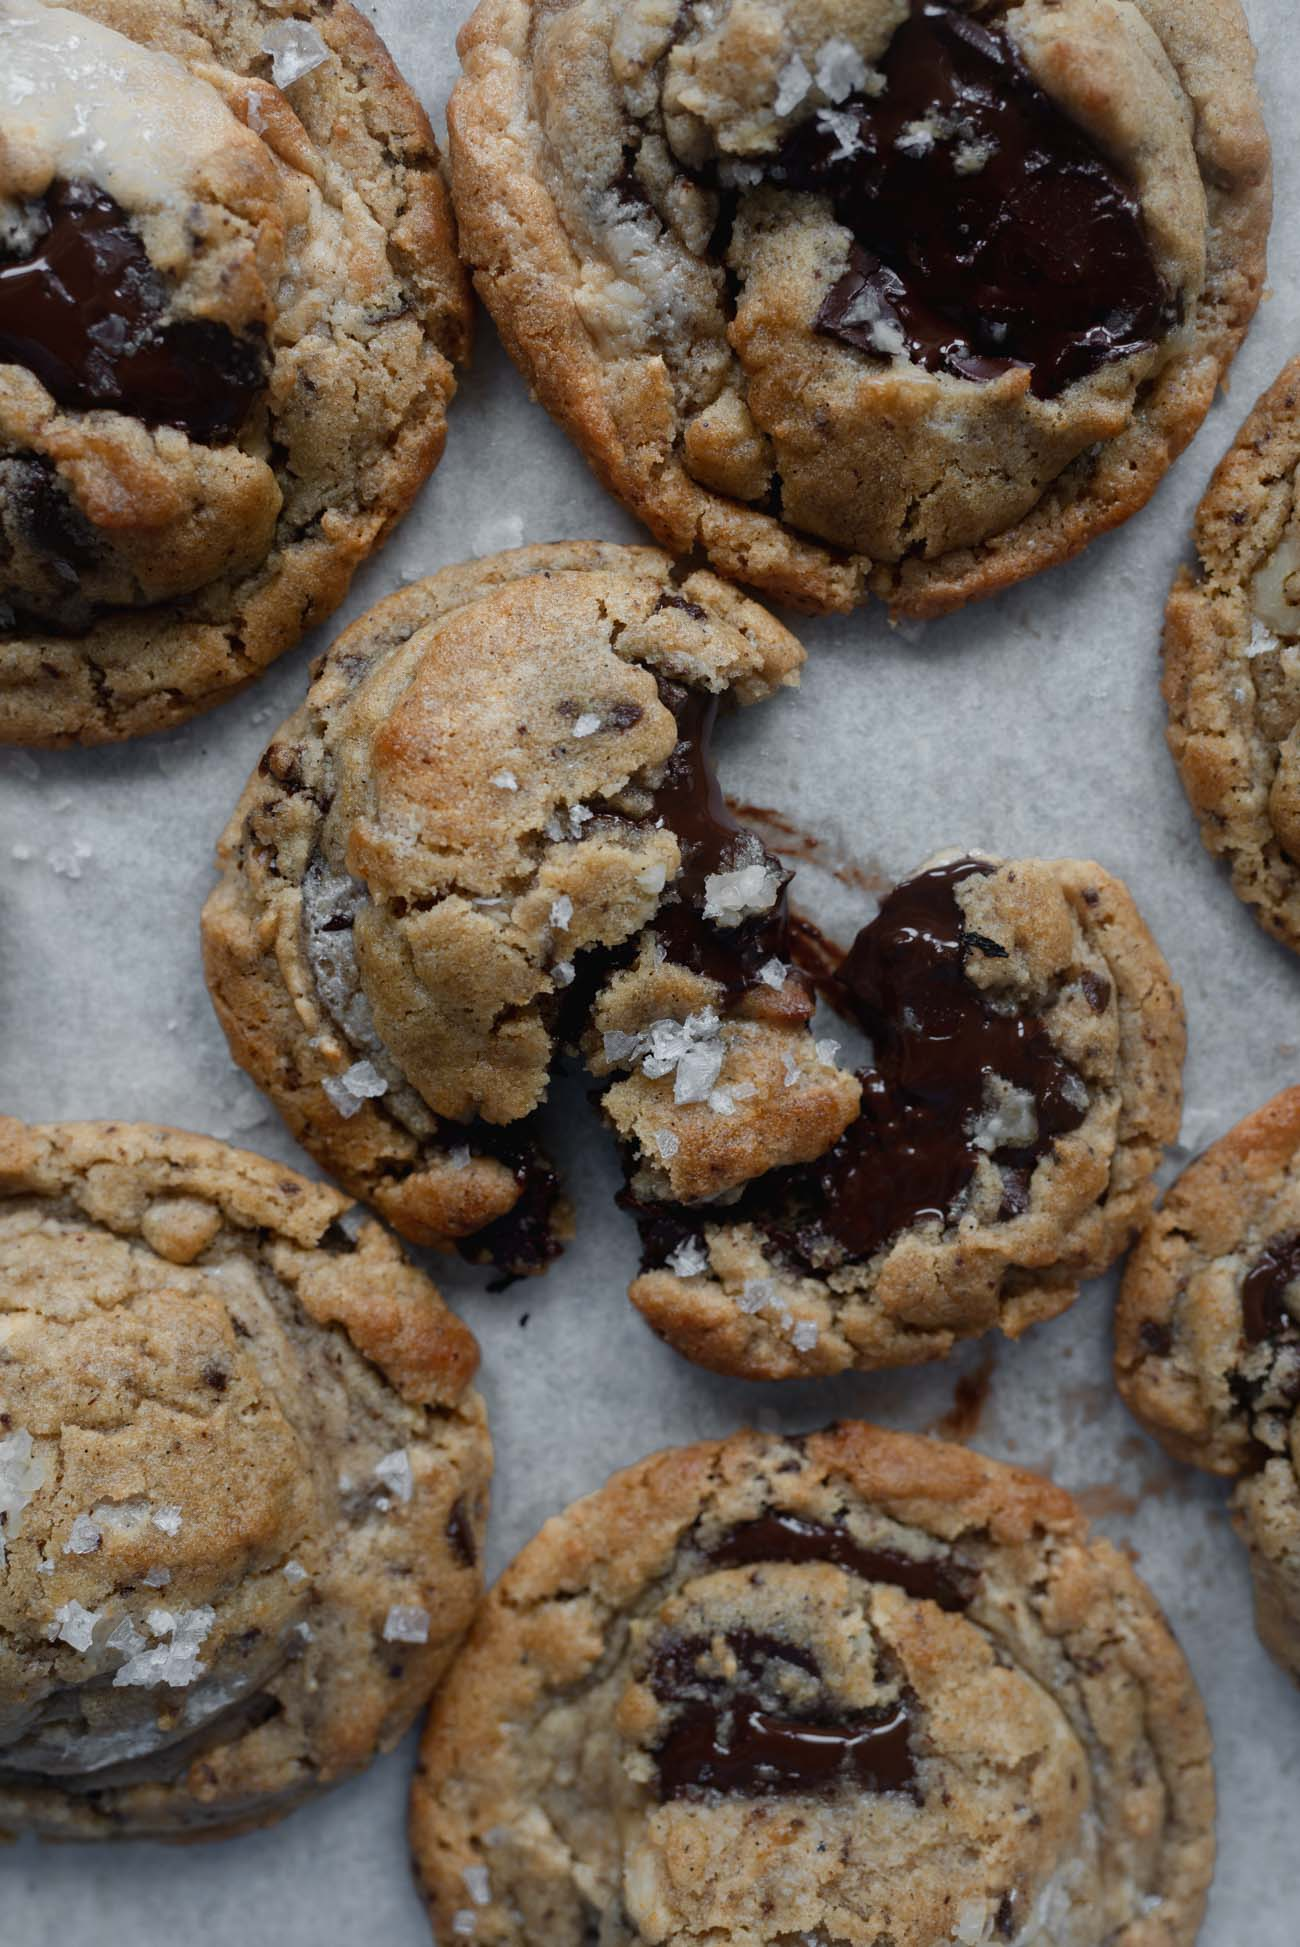 Halvah-Burnt-Butter-and-Walnut-Chocolate-Chunk-Cookies-8-of-14.jpg